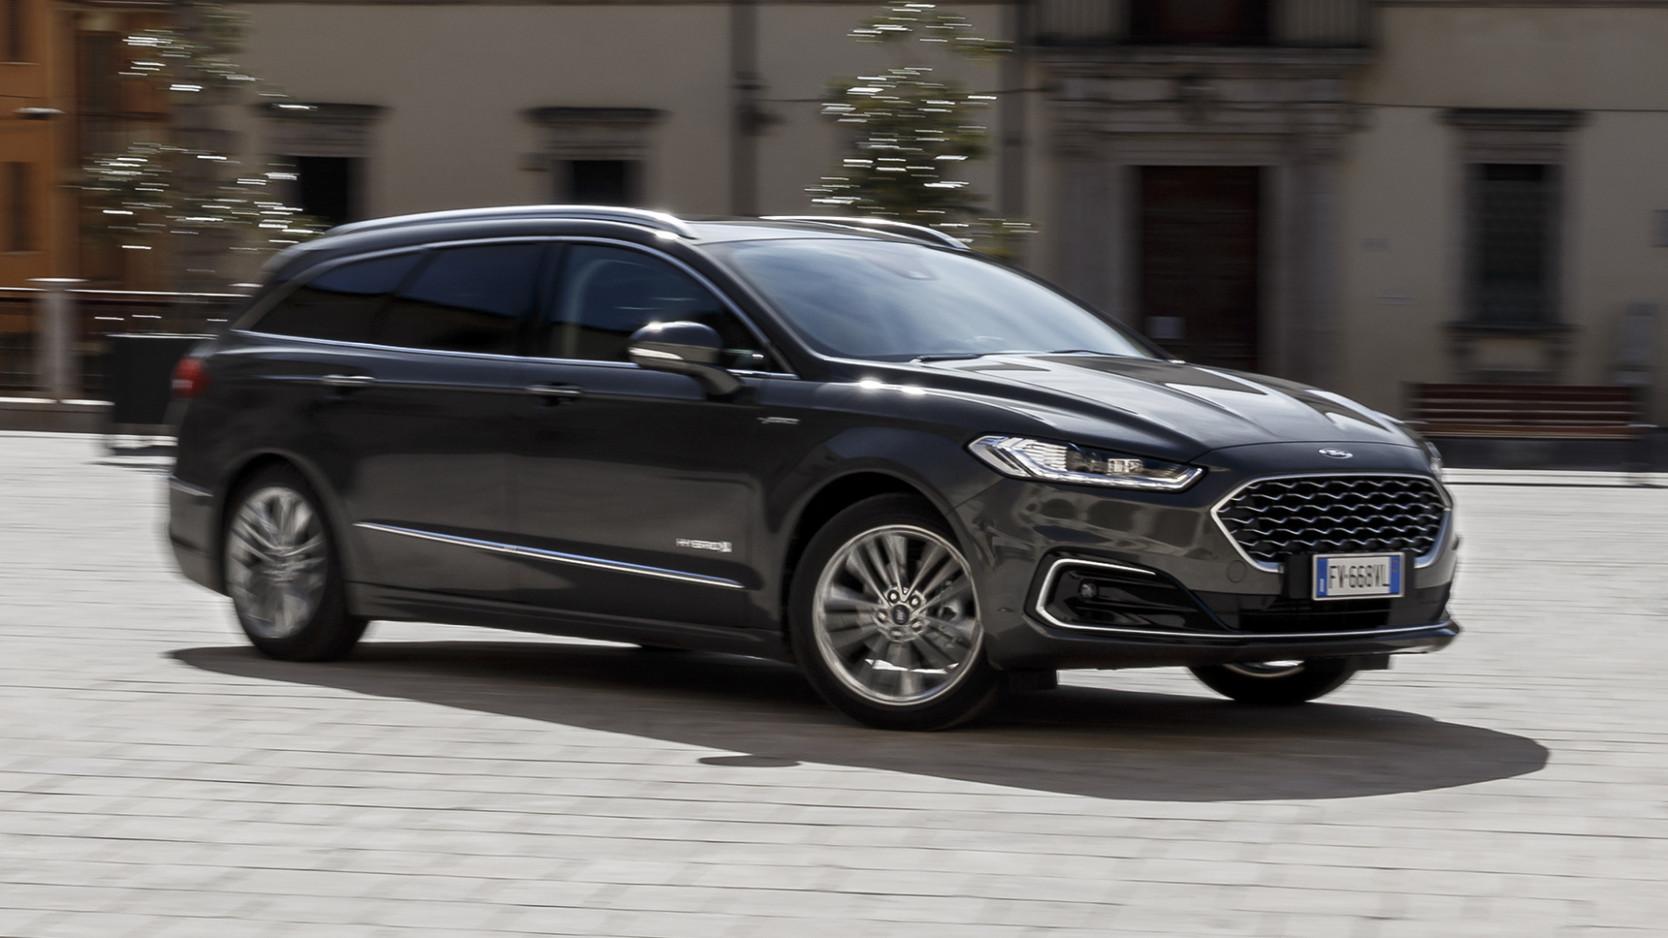 Redesign and Concept 2022 Ford Mondeo